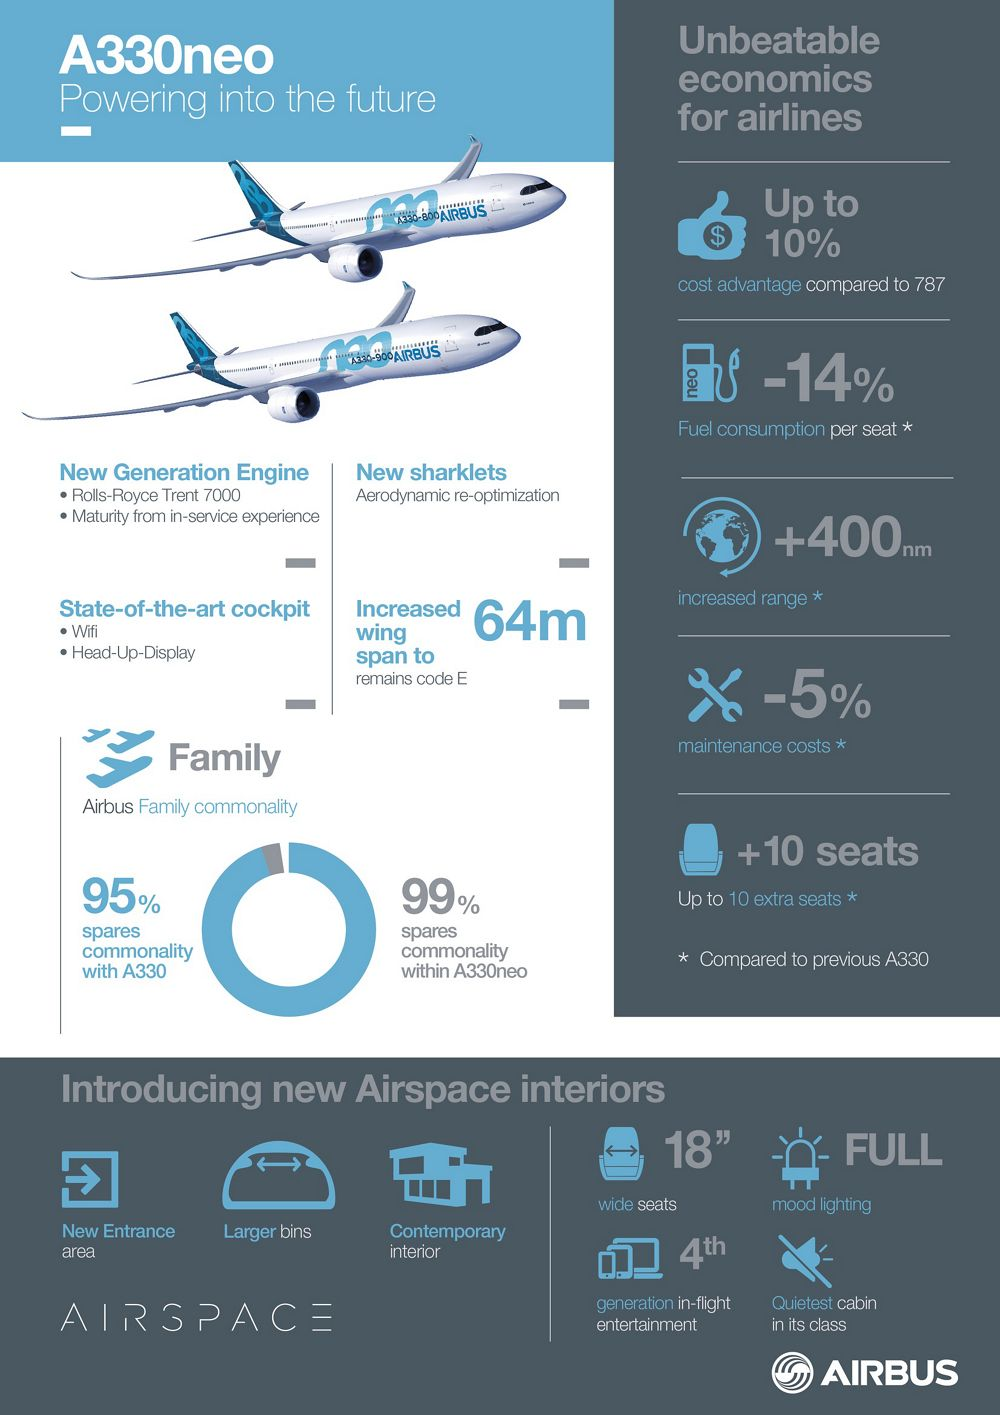 A330NEO_INFOGRAPHICS_18-05-16, Infographic_A330neo_Powering into the future